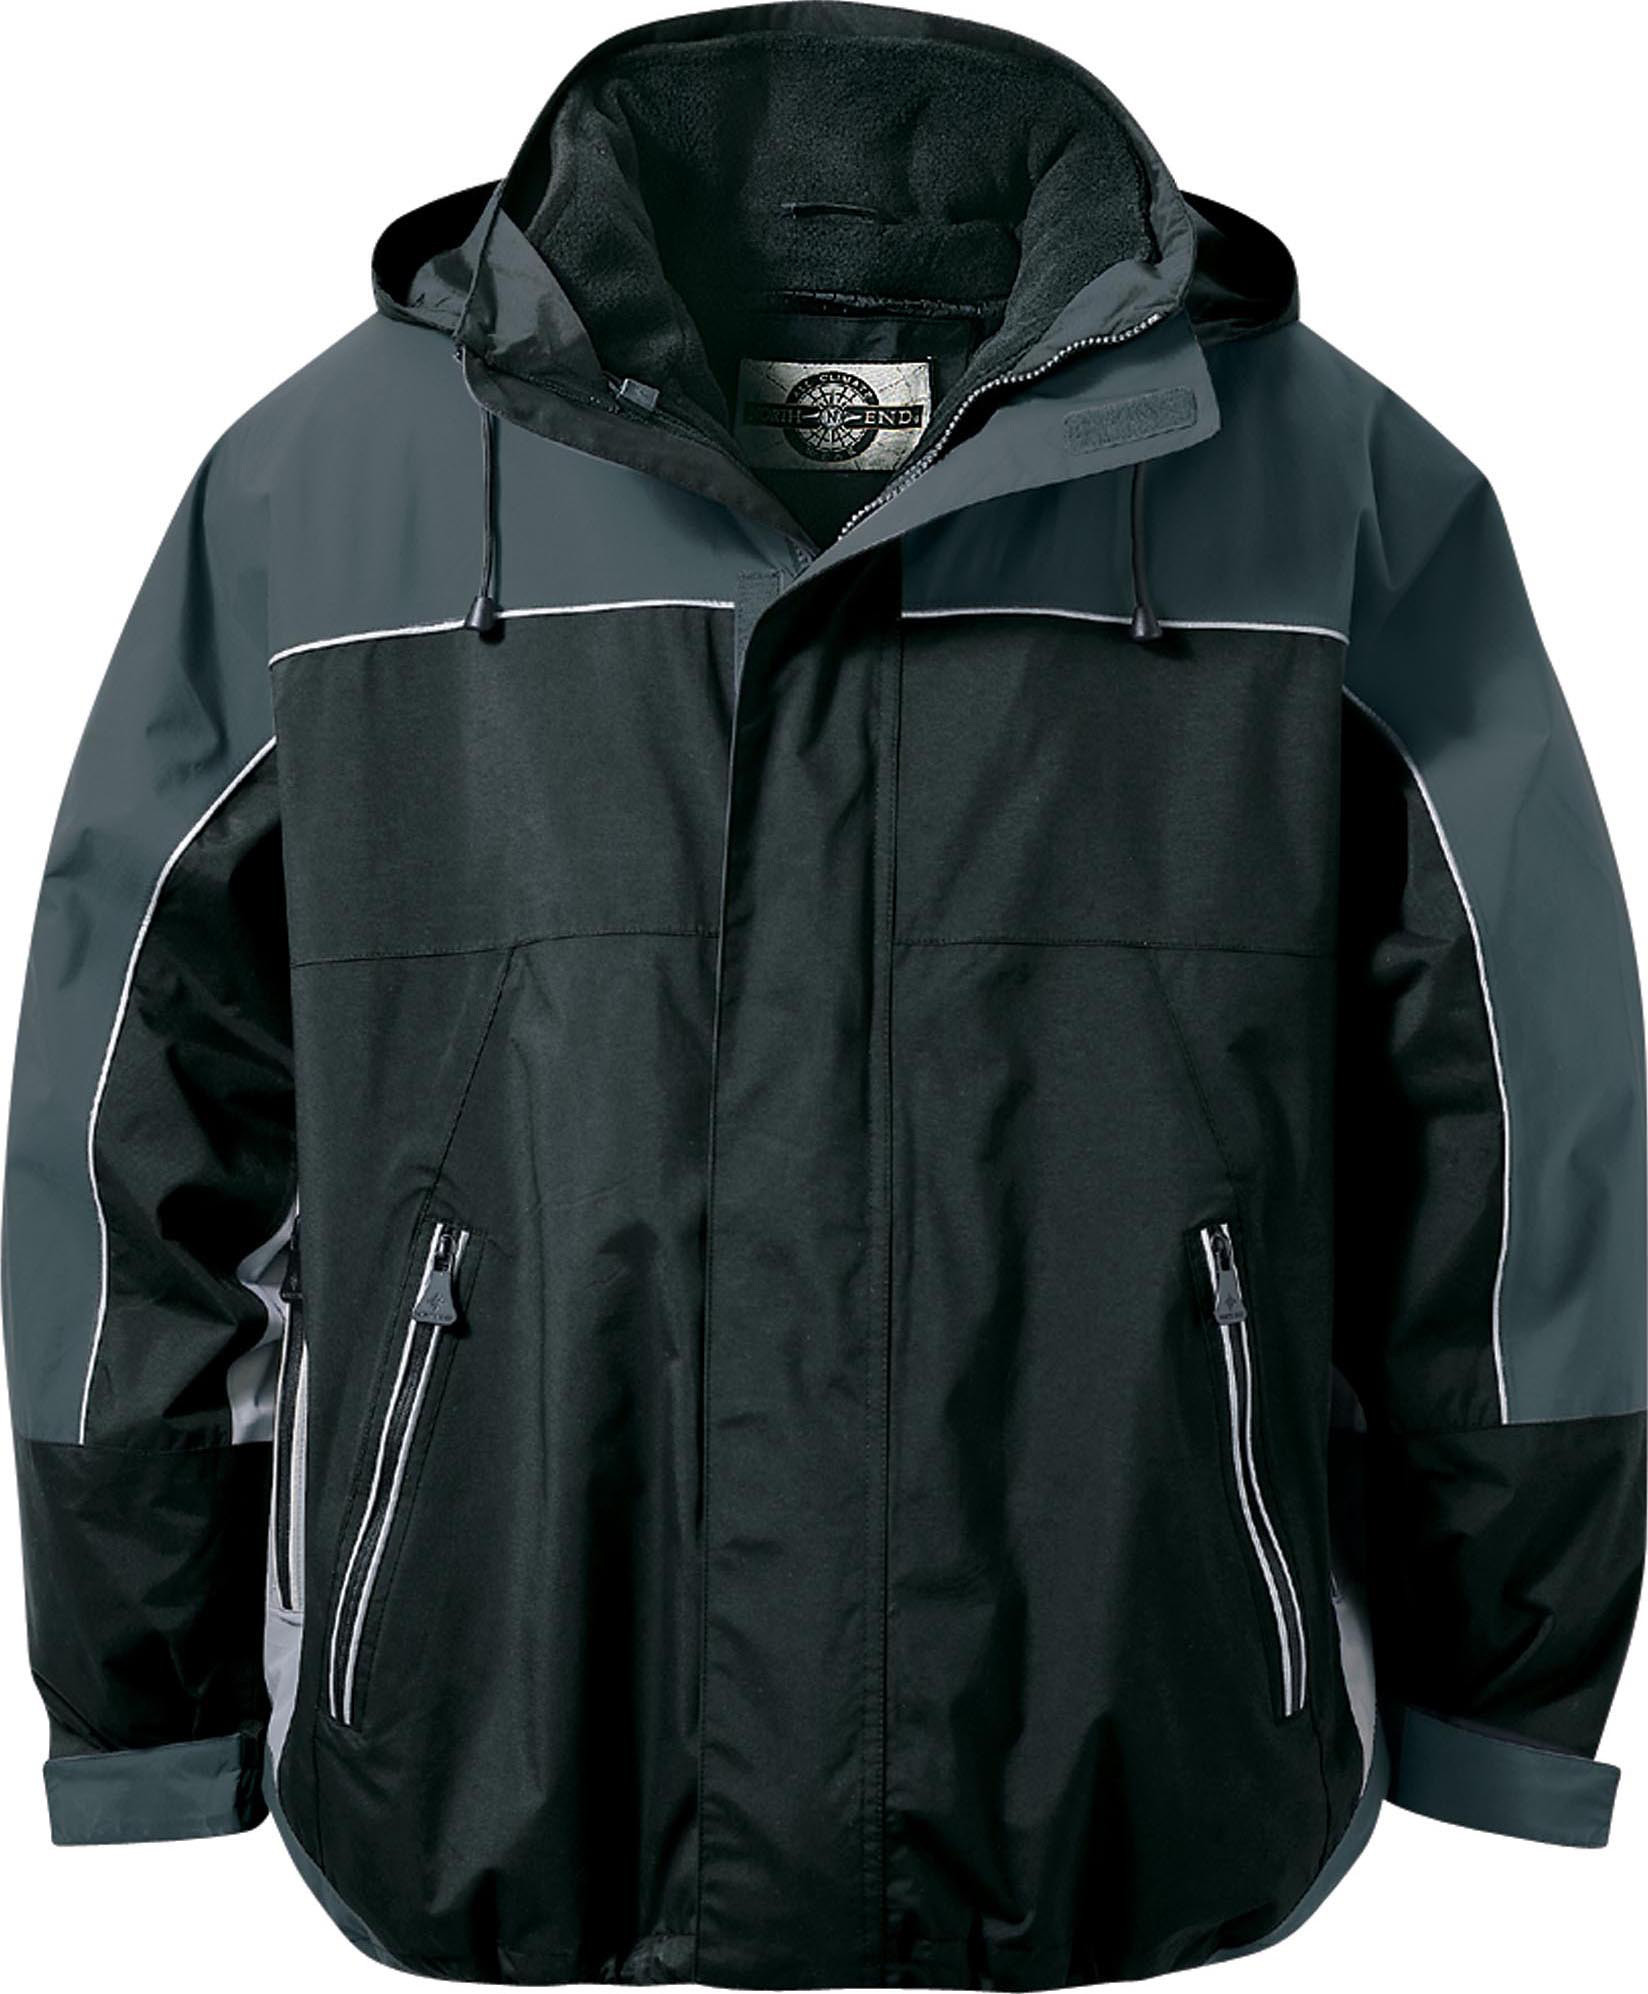 Ash City UTK 2 Warm.Logik 88052 - Men's Techno Performance 3-In-1 Seam Sealed Mid-Length Jacket